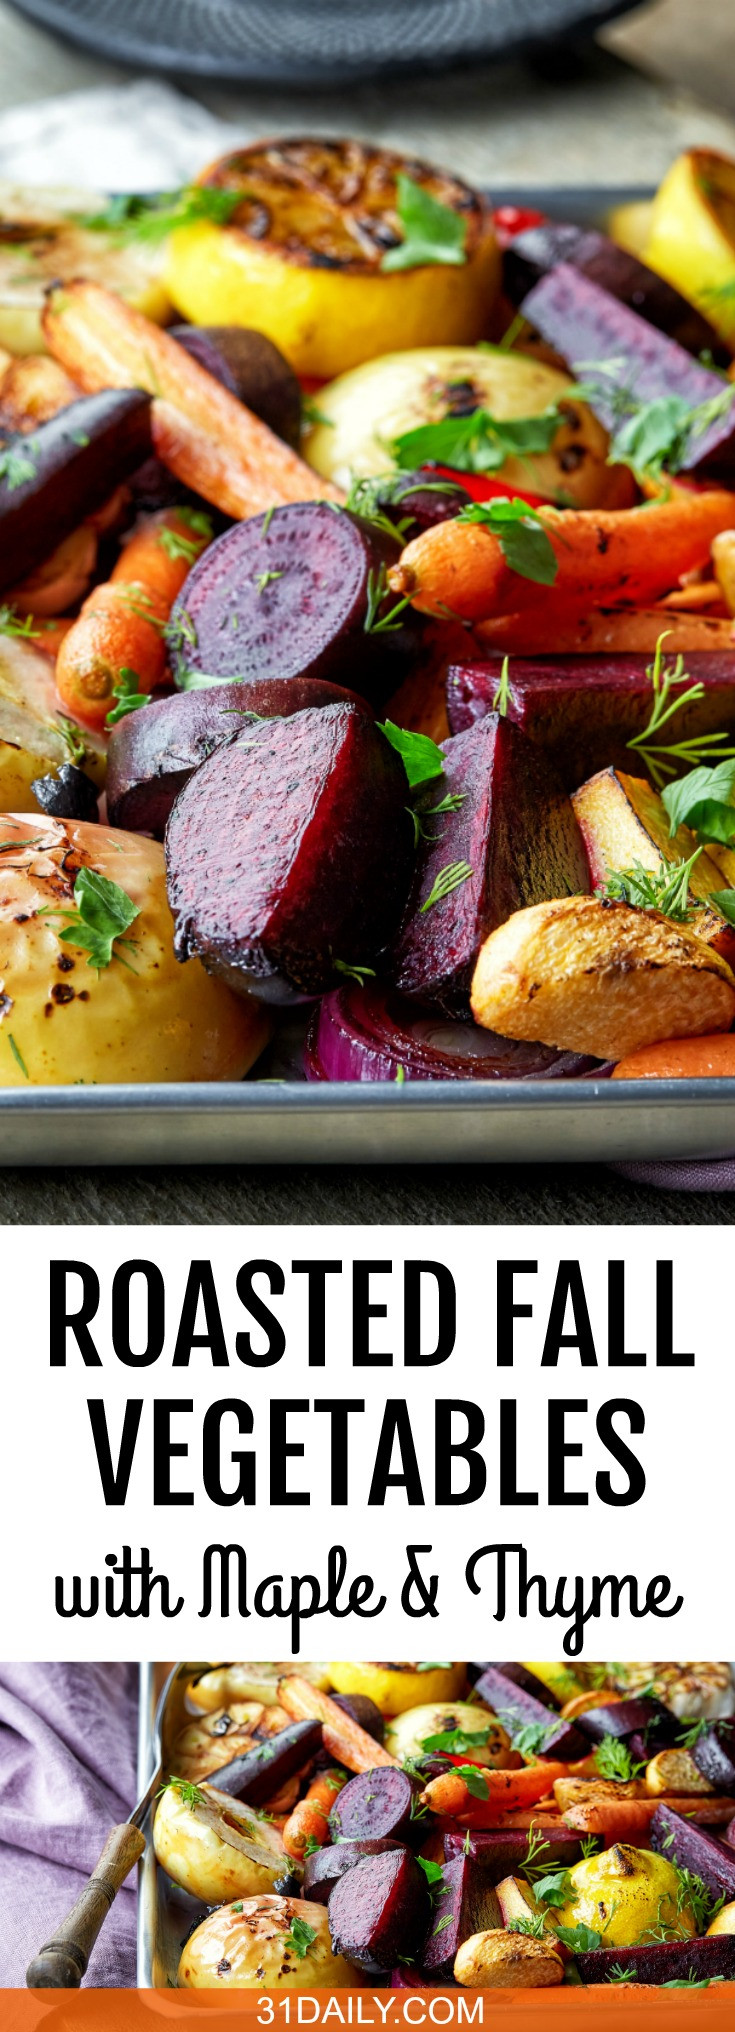 Roasted Fall Vegetables  Roasted Fall Ve ables with Maple Thyme and Apple 31 Daily